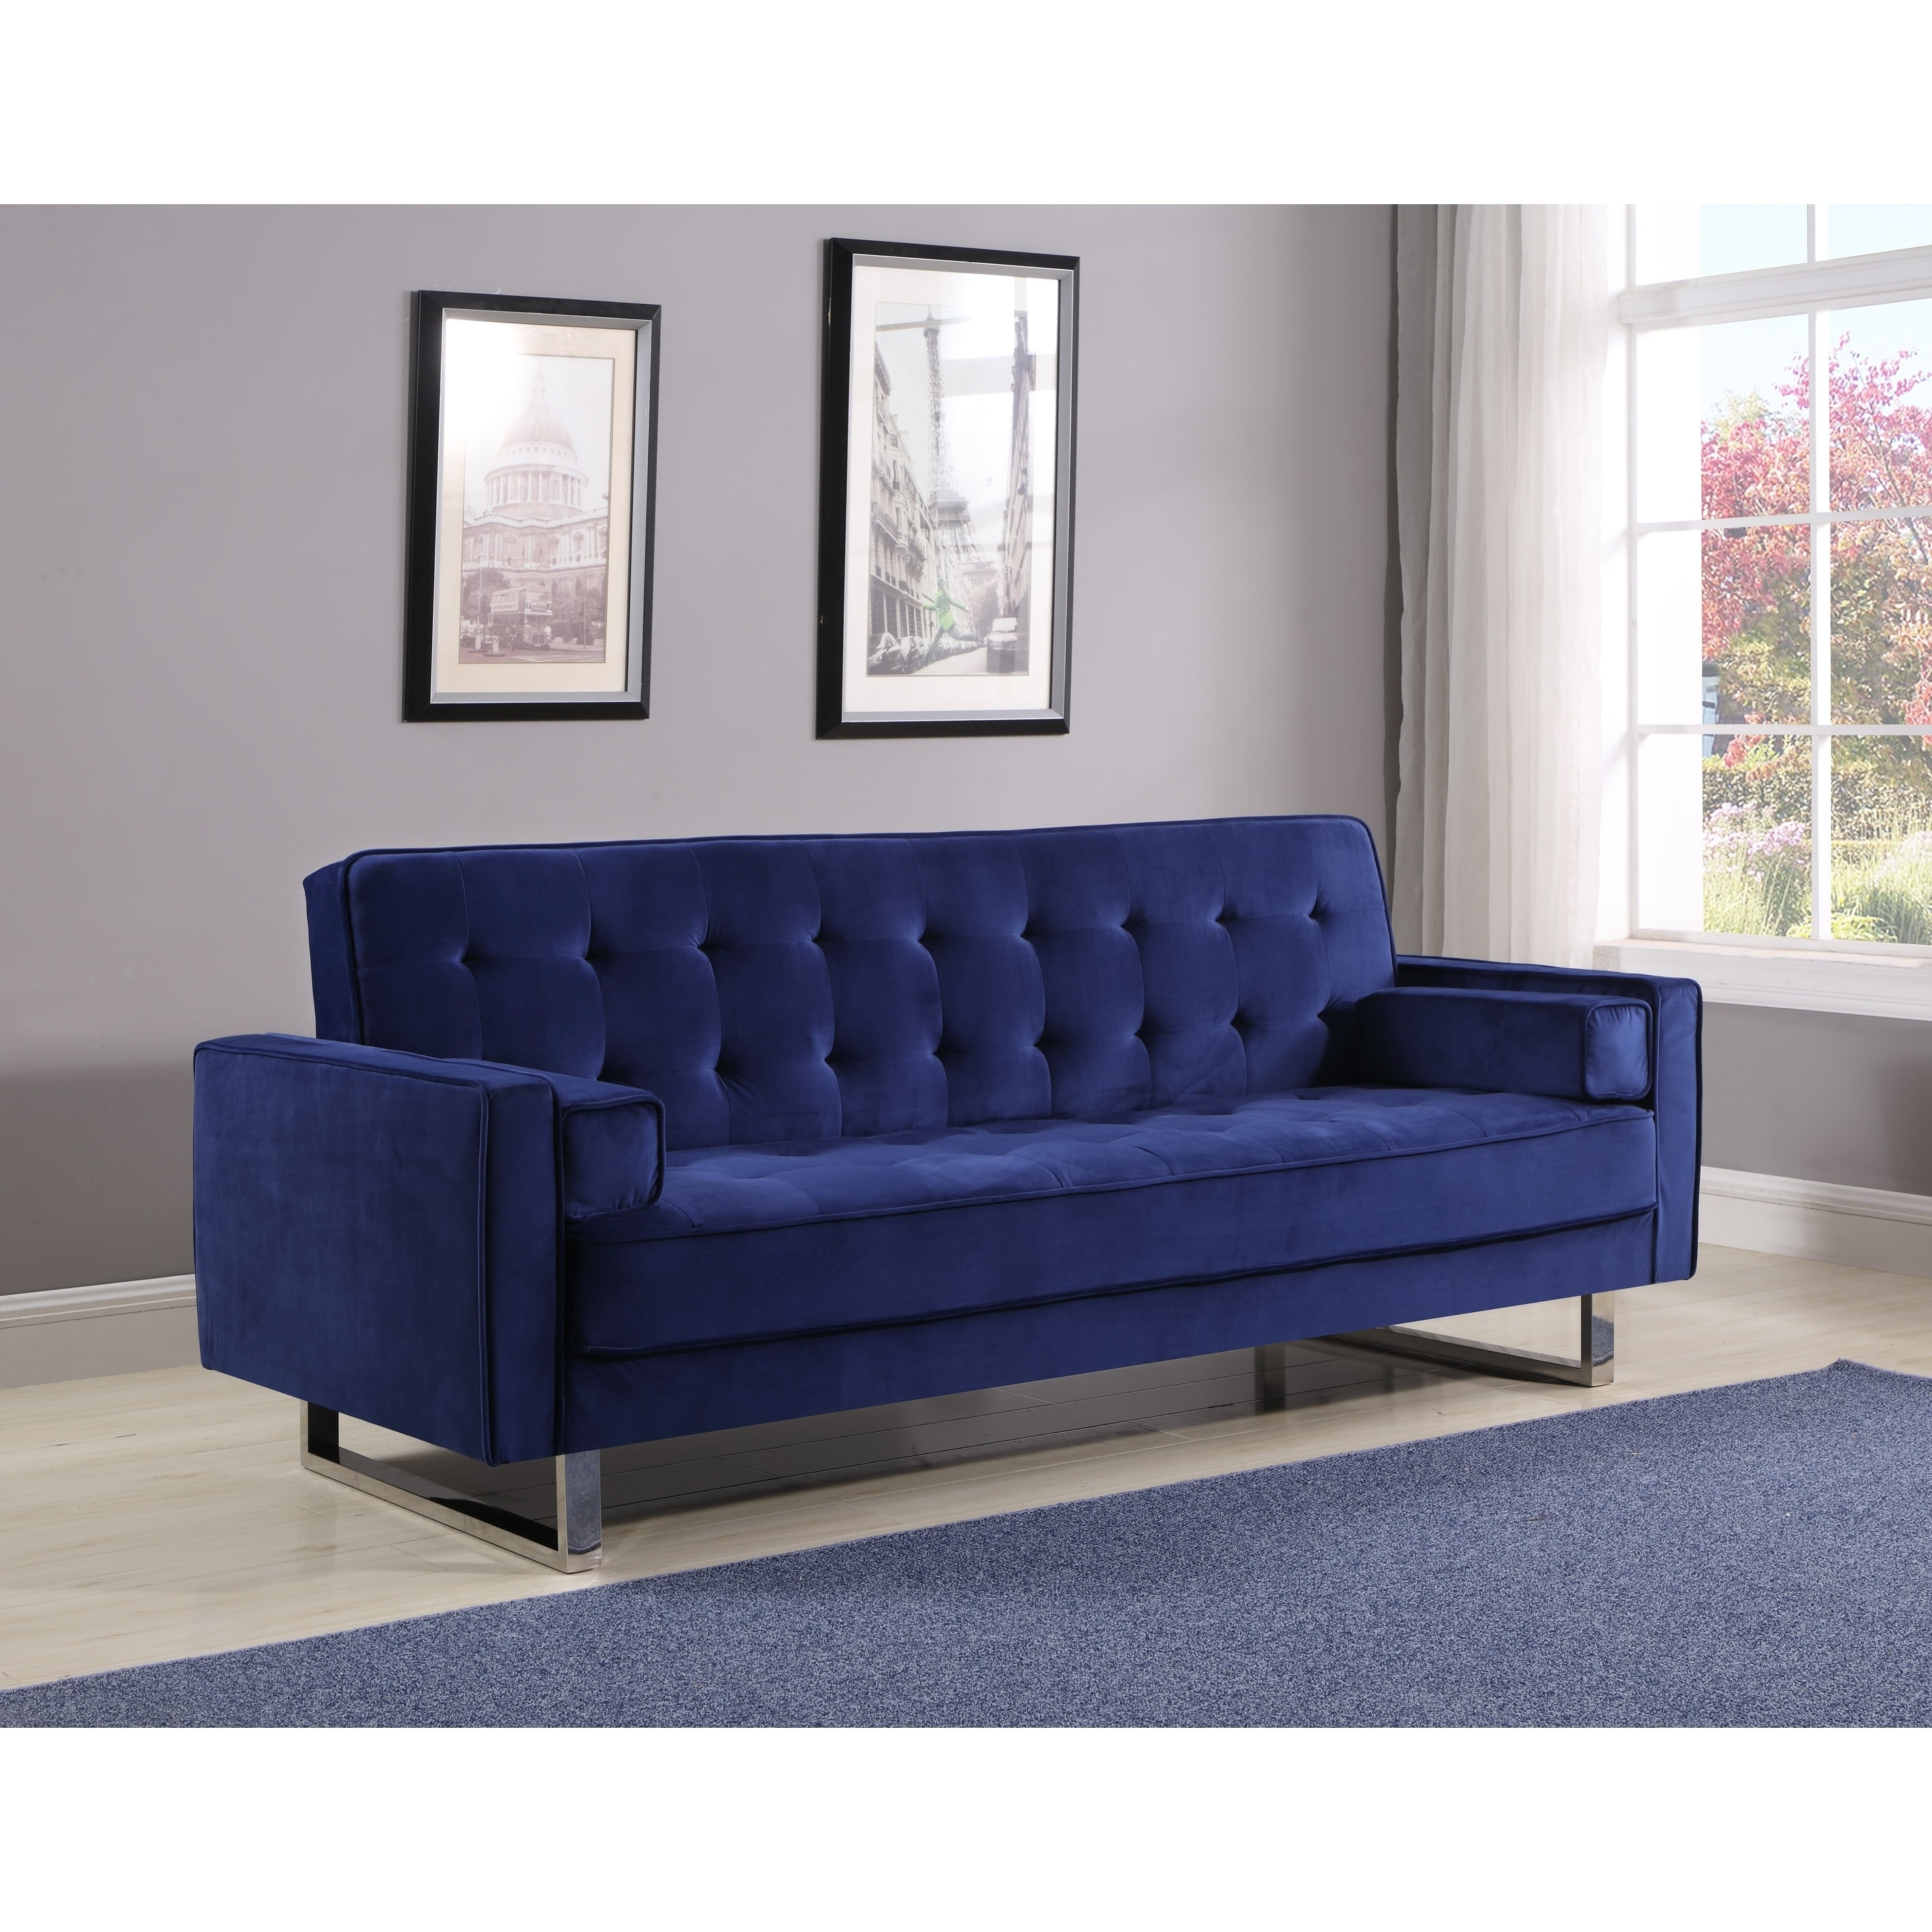 Best Quality Furniture Velvet Tufted Click Clack Sofa Bed Free Shipping Today 22543759